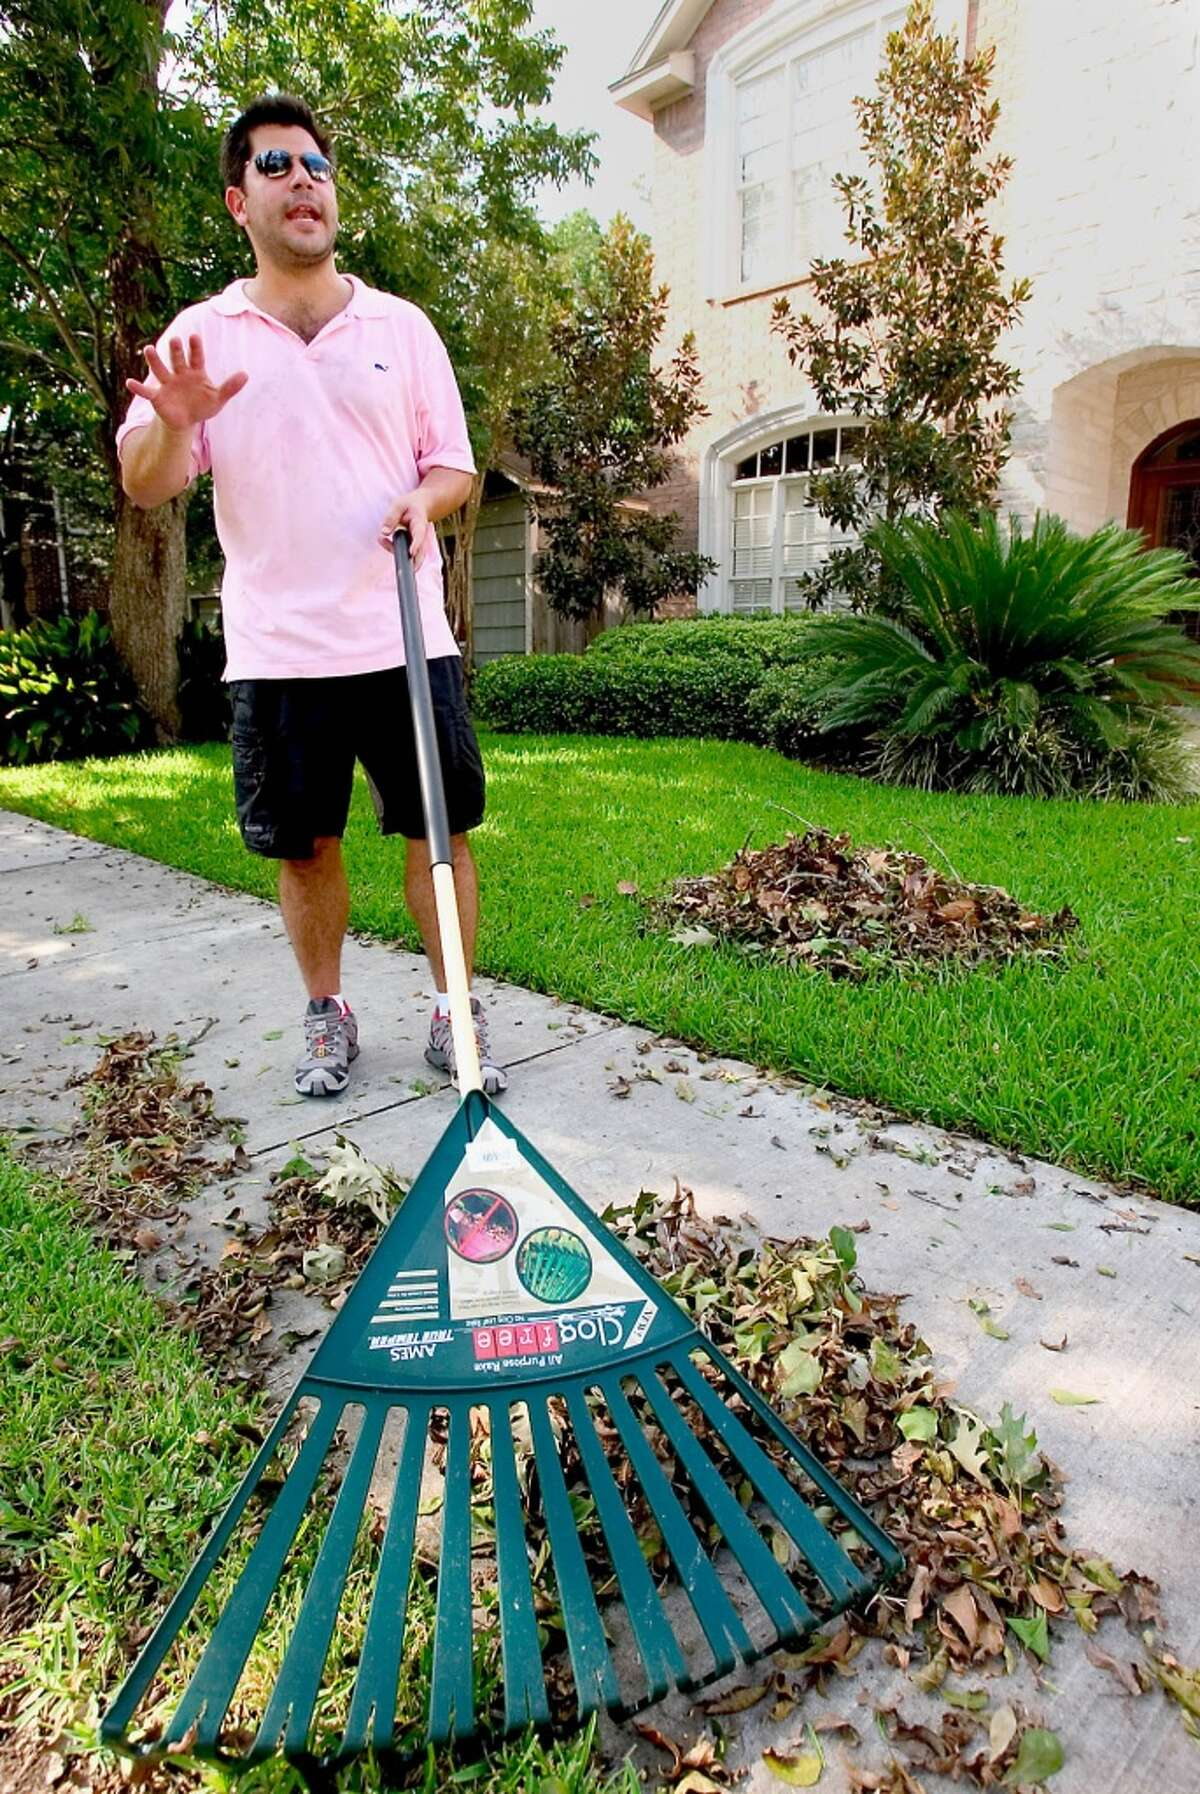 No. 8: West University Place, Texas WEST UNIVERSITY, TX - SEPTEMBER 25: David Frankfort, a resident of West University, Texas, rakes outside his home on September 25, 2005. He had to sit in seven hours of traffic congestion, before he could reach Austin, Texas - a city outside the path of Hurricane Rita. More than 2 million Houston-area residents evacuated their city. (Photo by Melanie Stetson Freeman/The Christian Science Monitor via Getty Images)